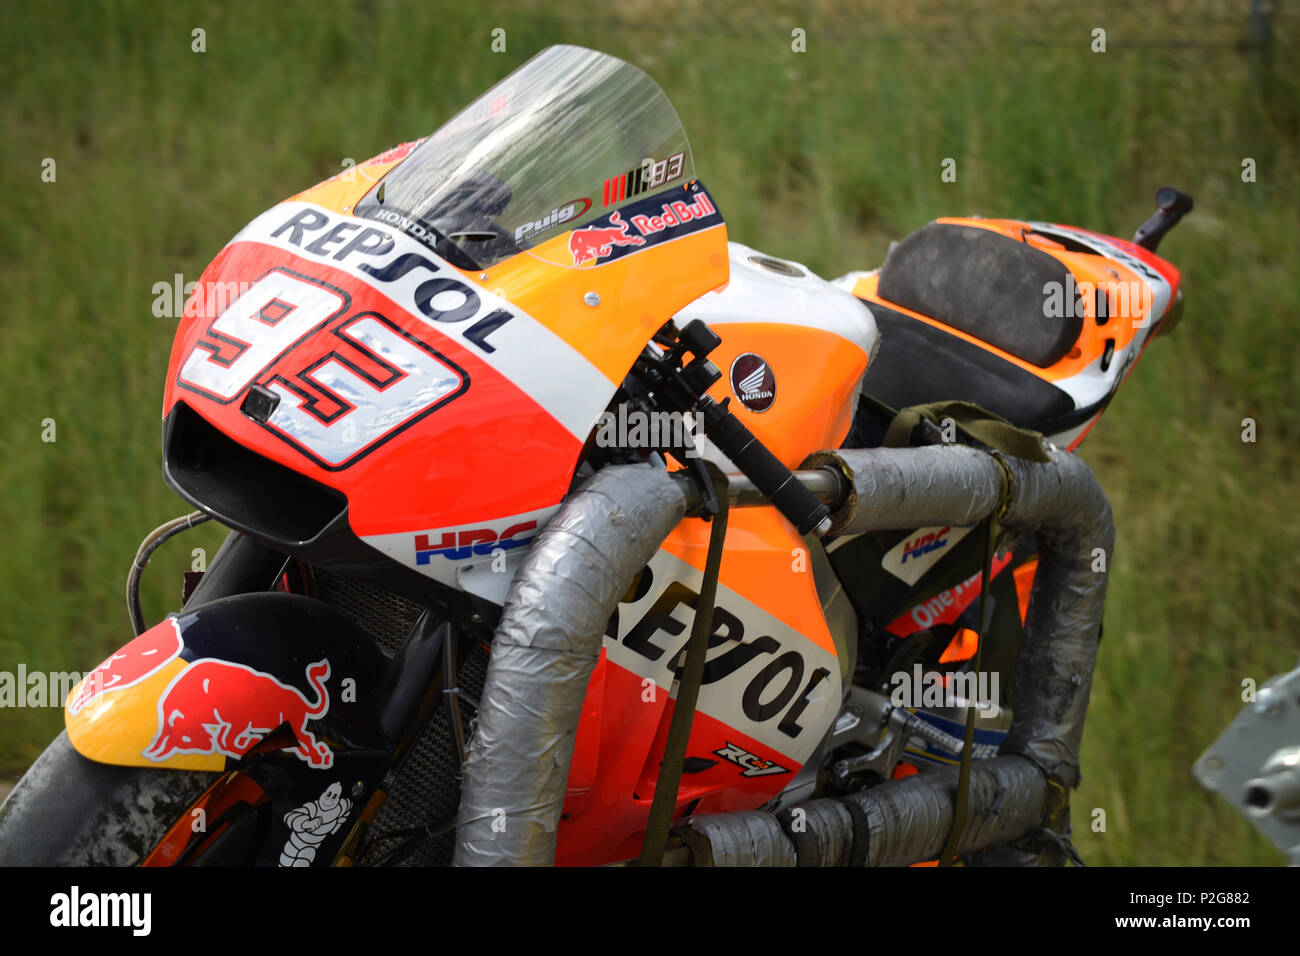 Barcelona -15th June 2018- SPAIN: accident of Marc Marquez during the free practice of the GP Catalunya Moto GP, in the Barcelona-Catalunya Circuit, on 15th June 2018. Photo: Joan Valls/Urbanandsport/Cordon Press - Stock Image